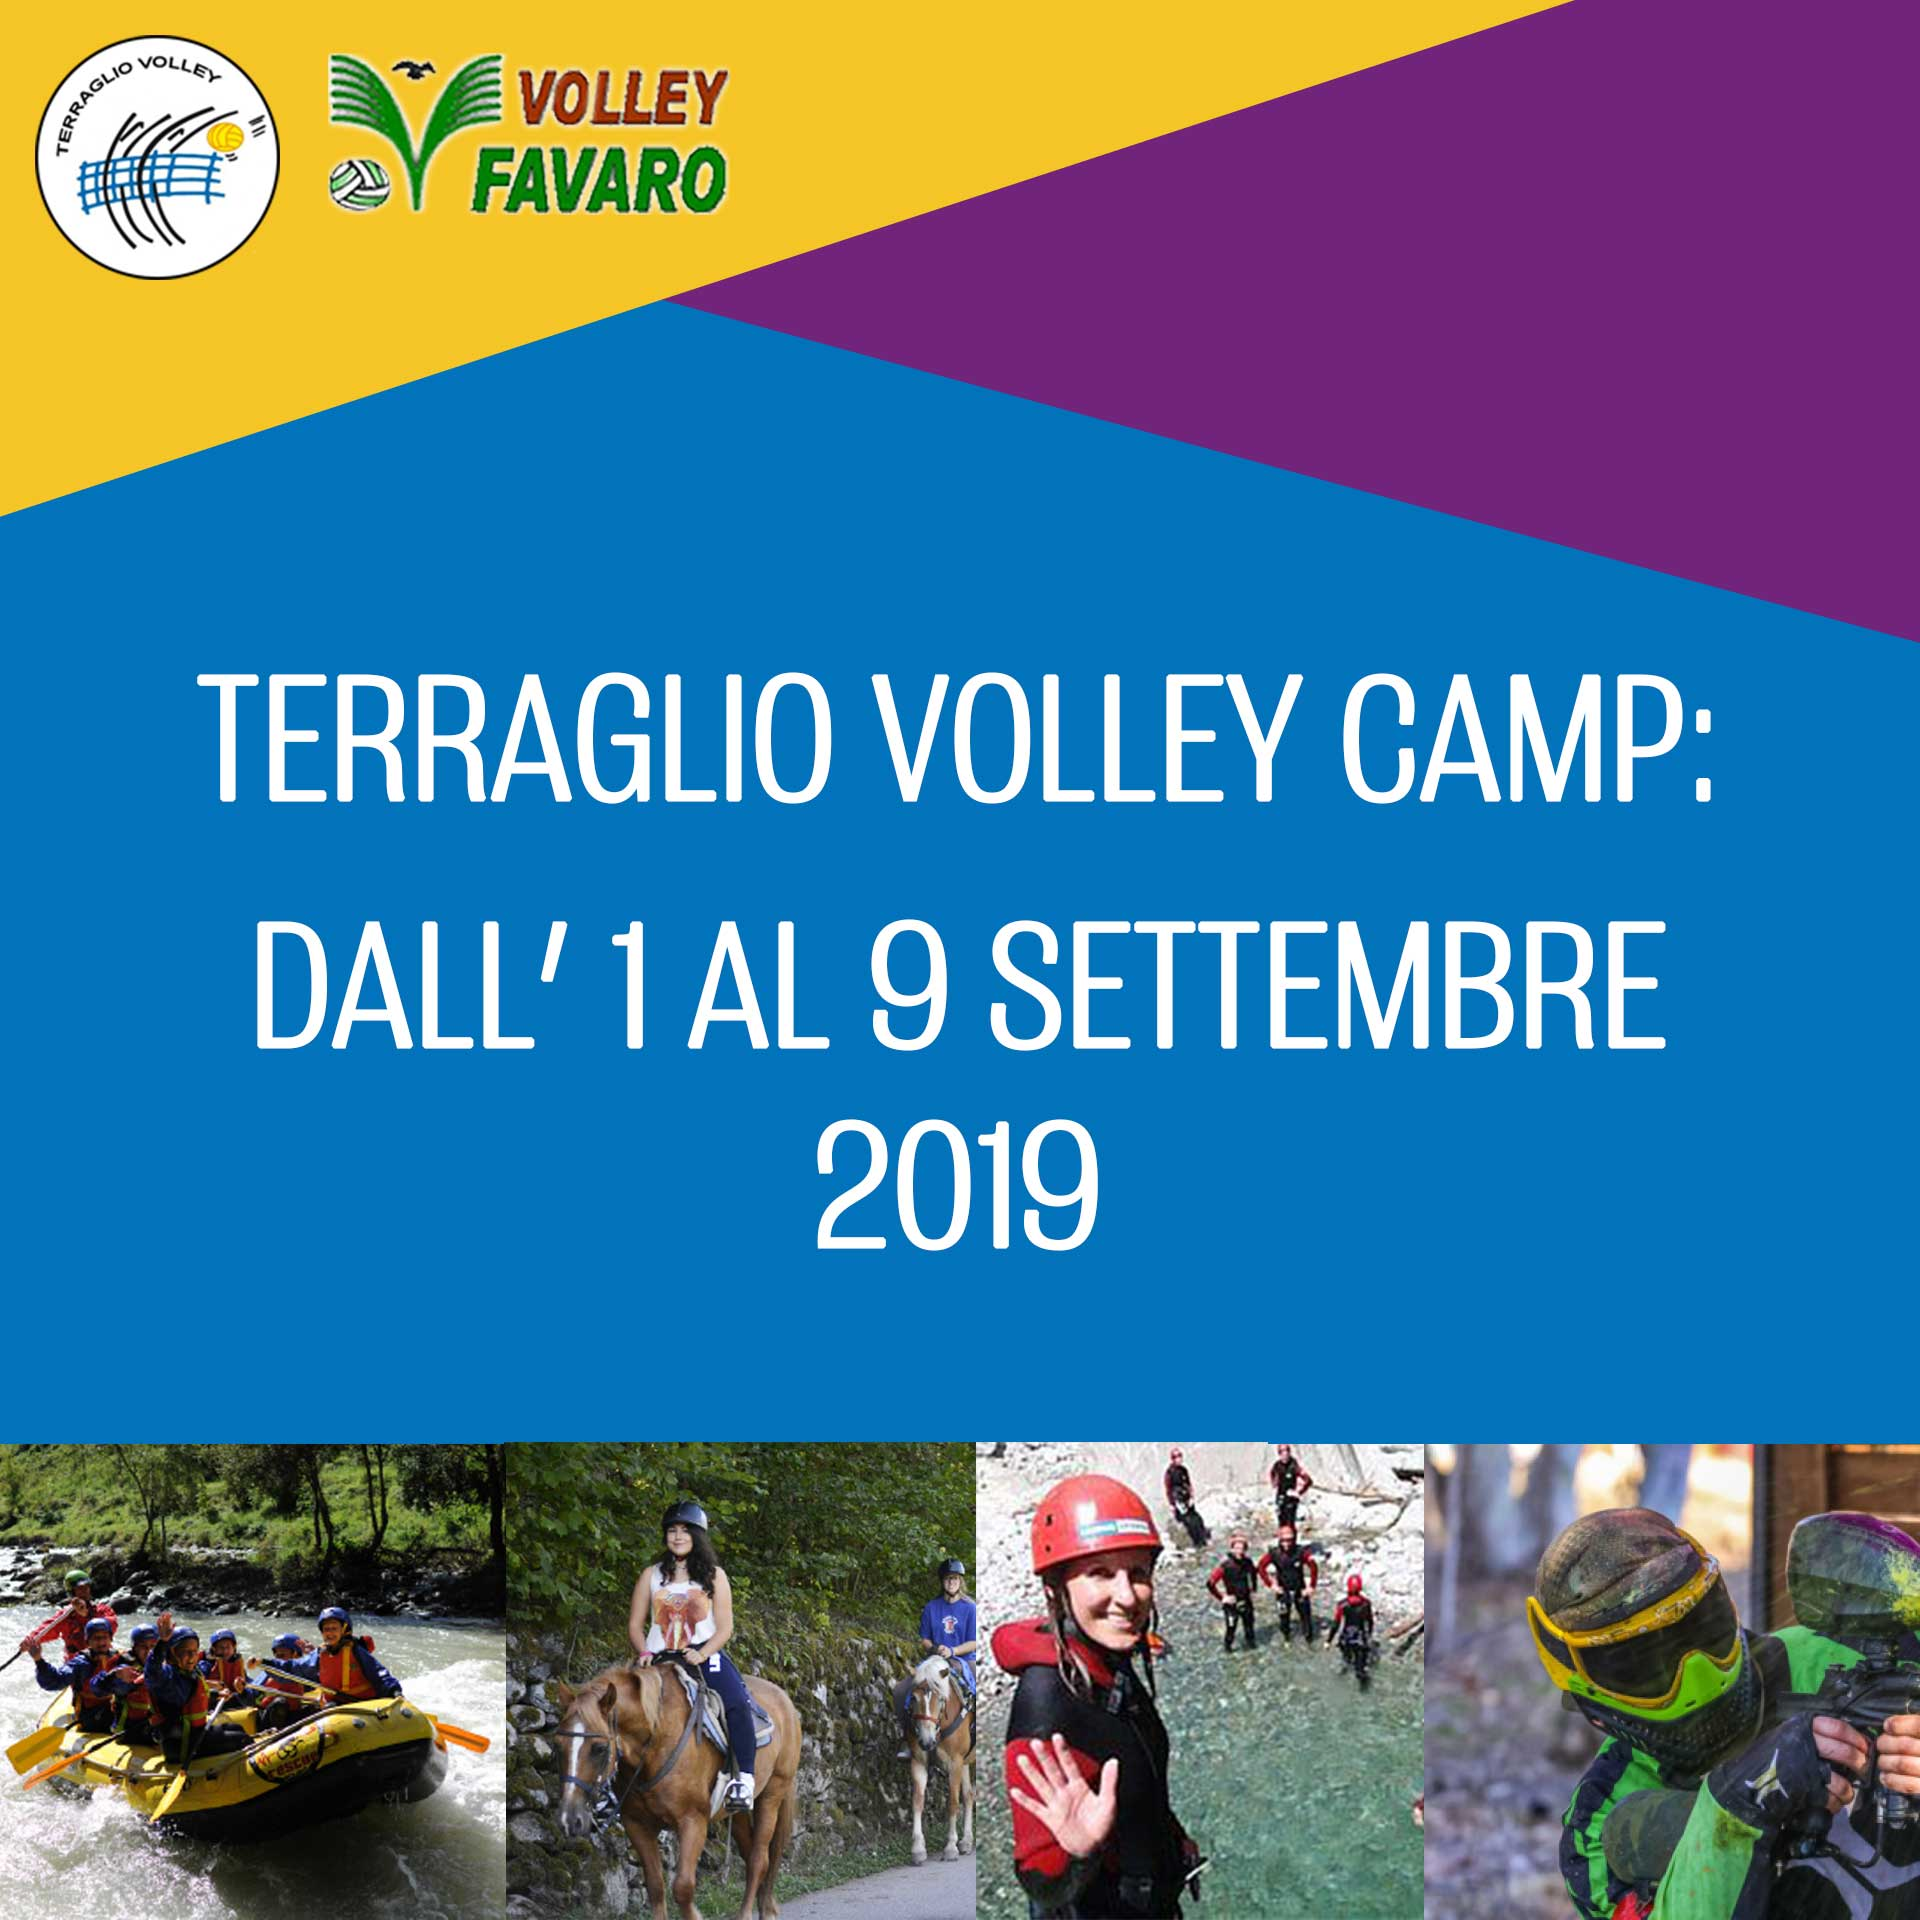 Terraglio Volley Camp 2019